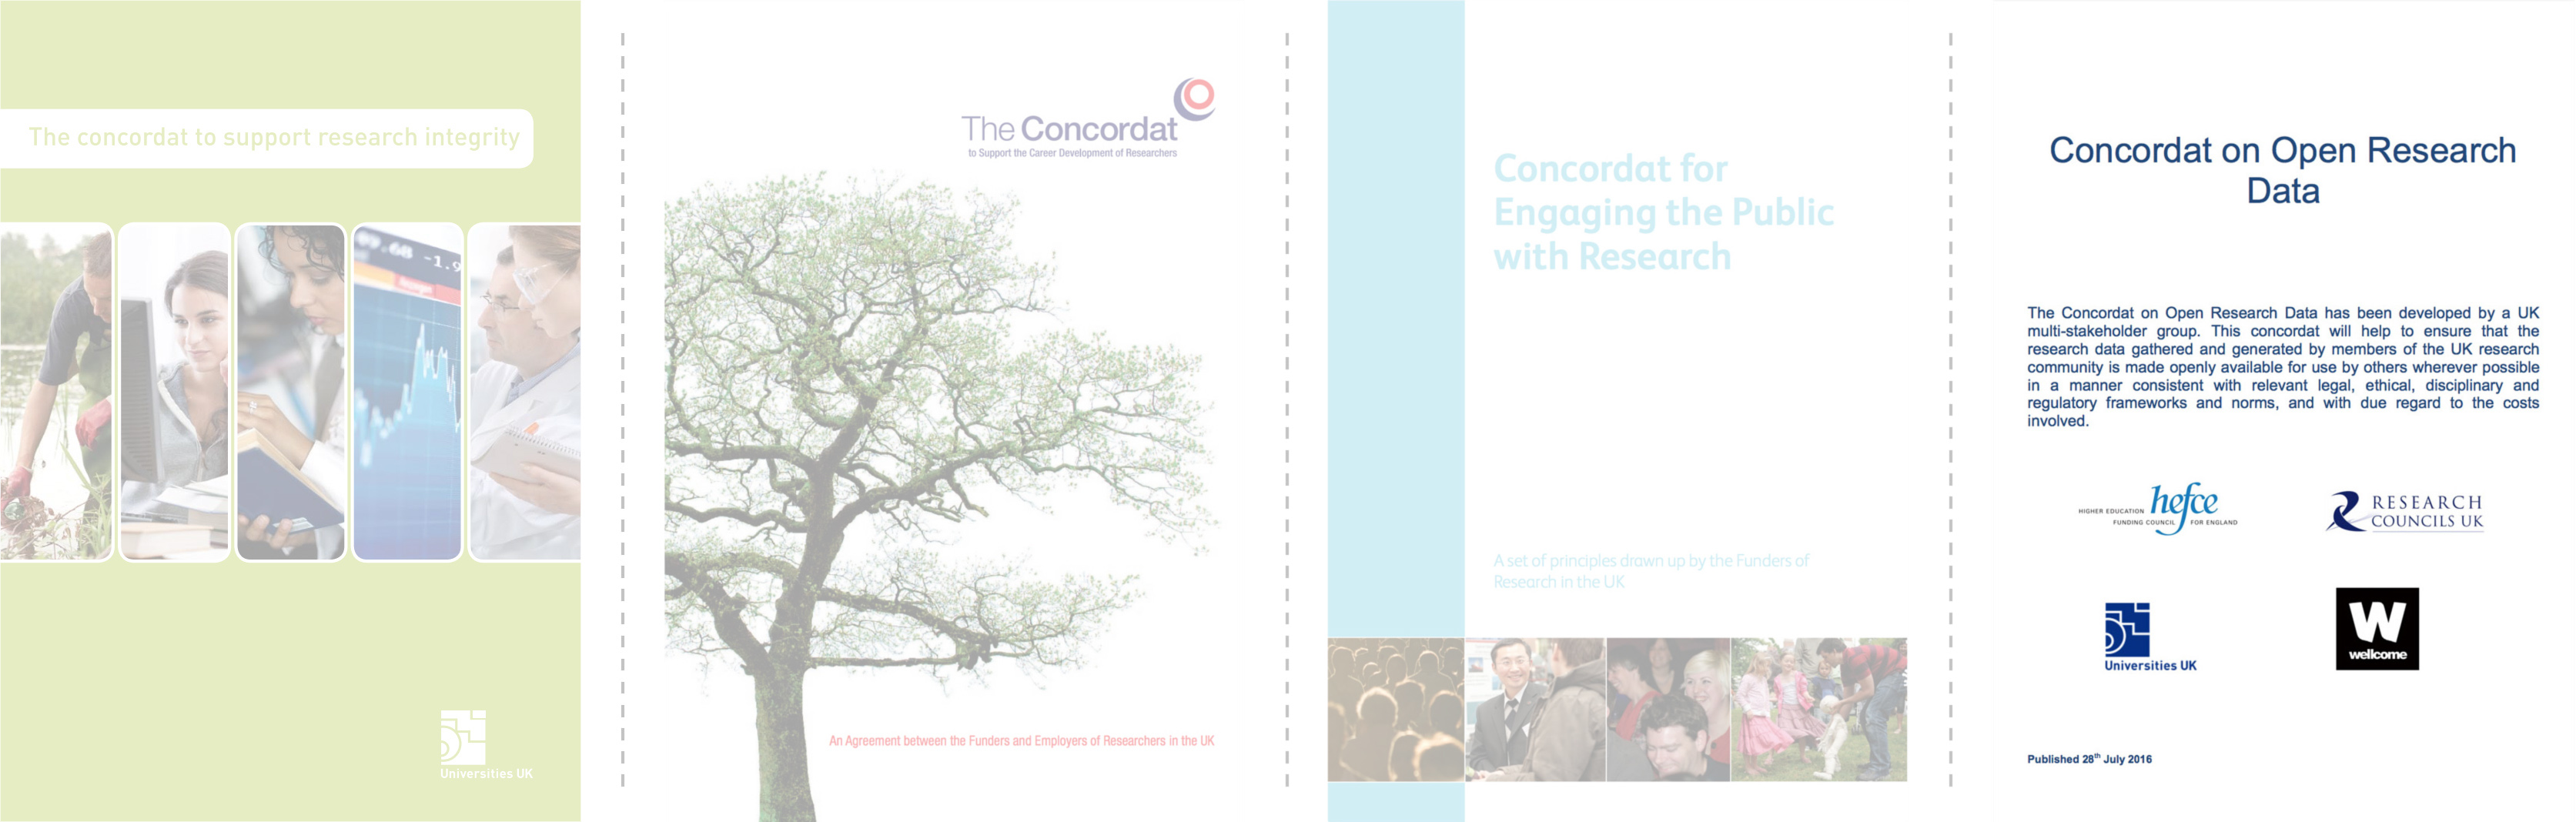 The Concordat to Support the Career Development of Researchers